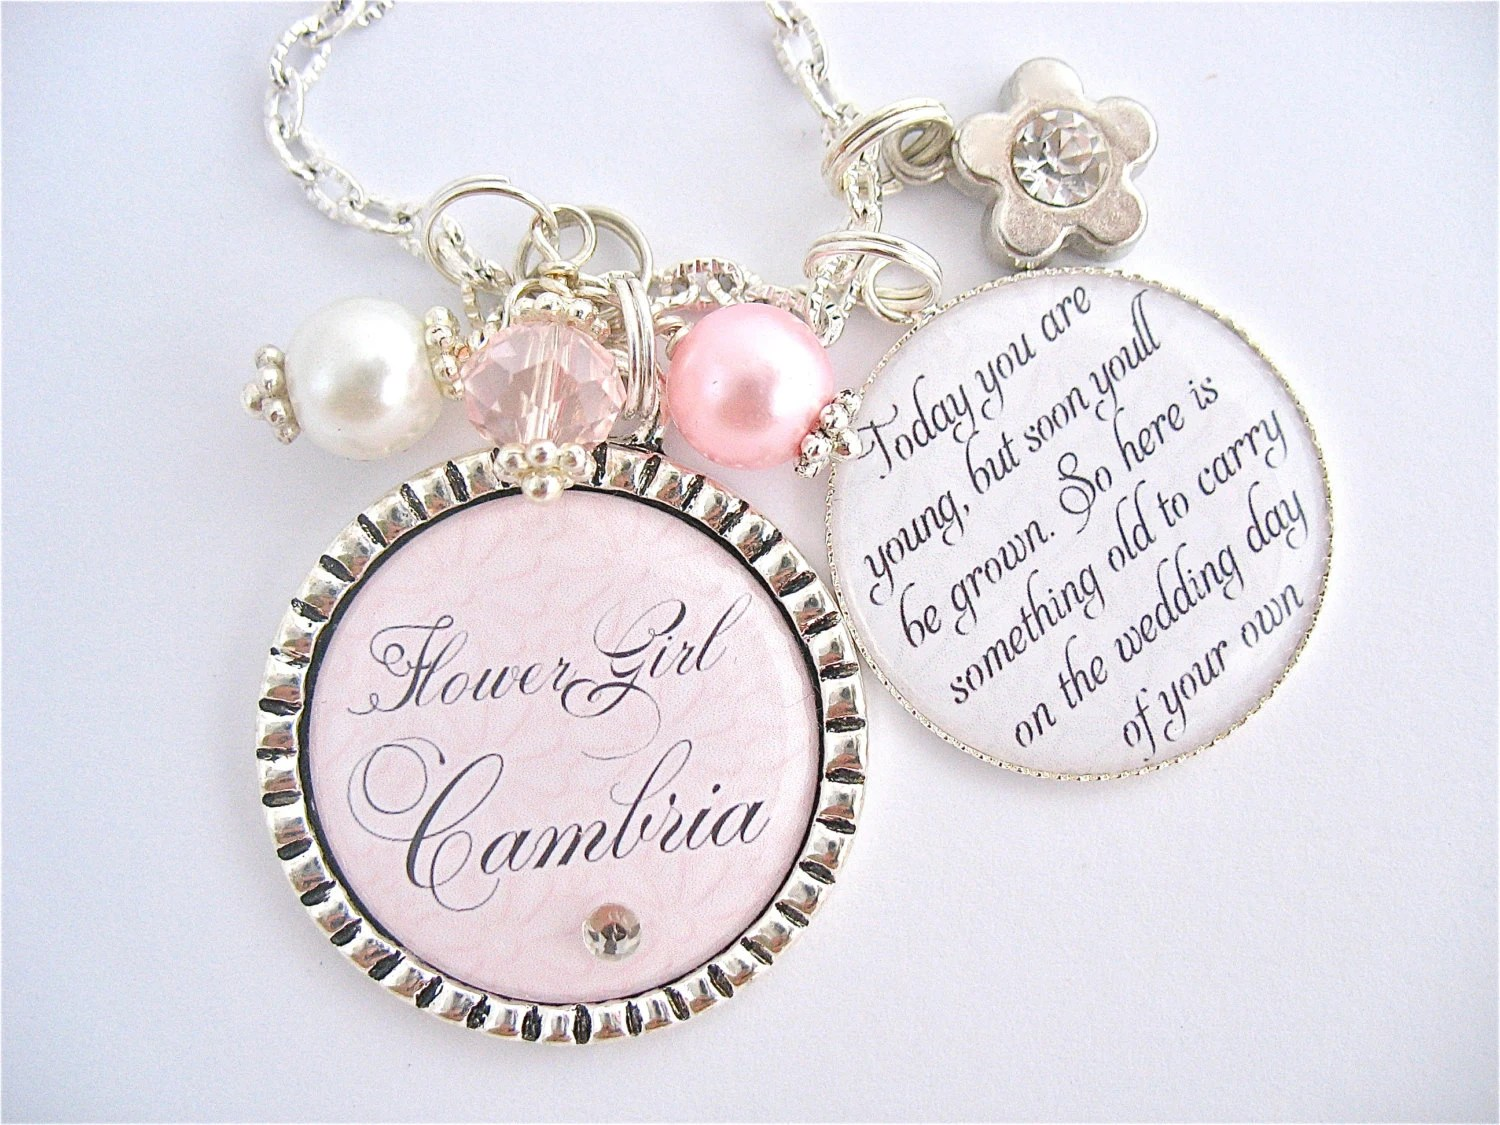 Personalizd FLOWER GIRL Gift Charm Necklace Unique Keepsake